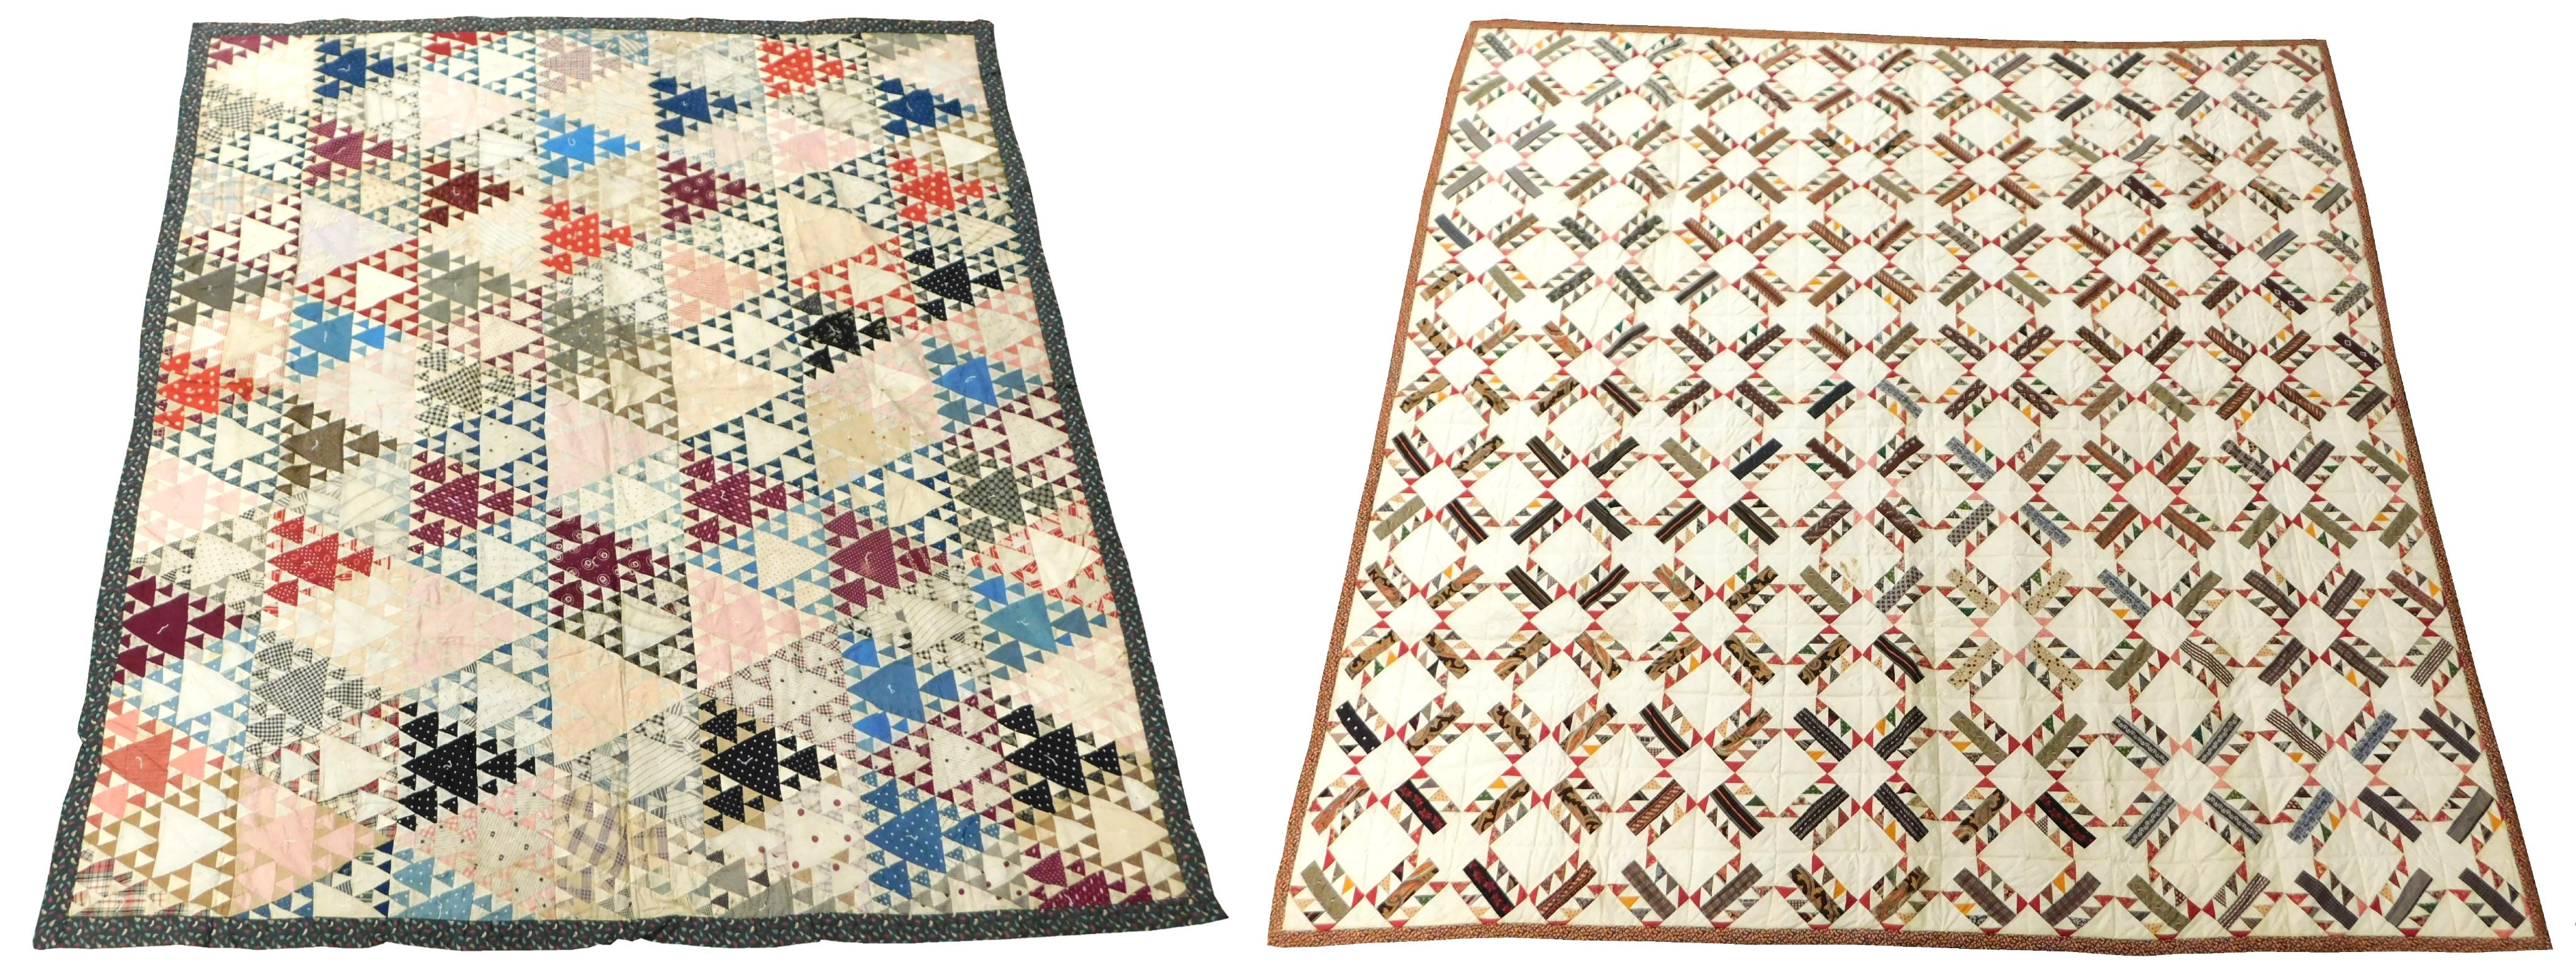 Two cotton piecework quilts: the first a needlework quilt, restored by Fran VanKeuren, with new back and border, deep warm-toned des...